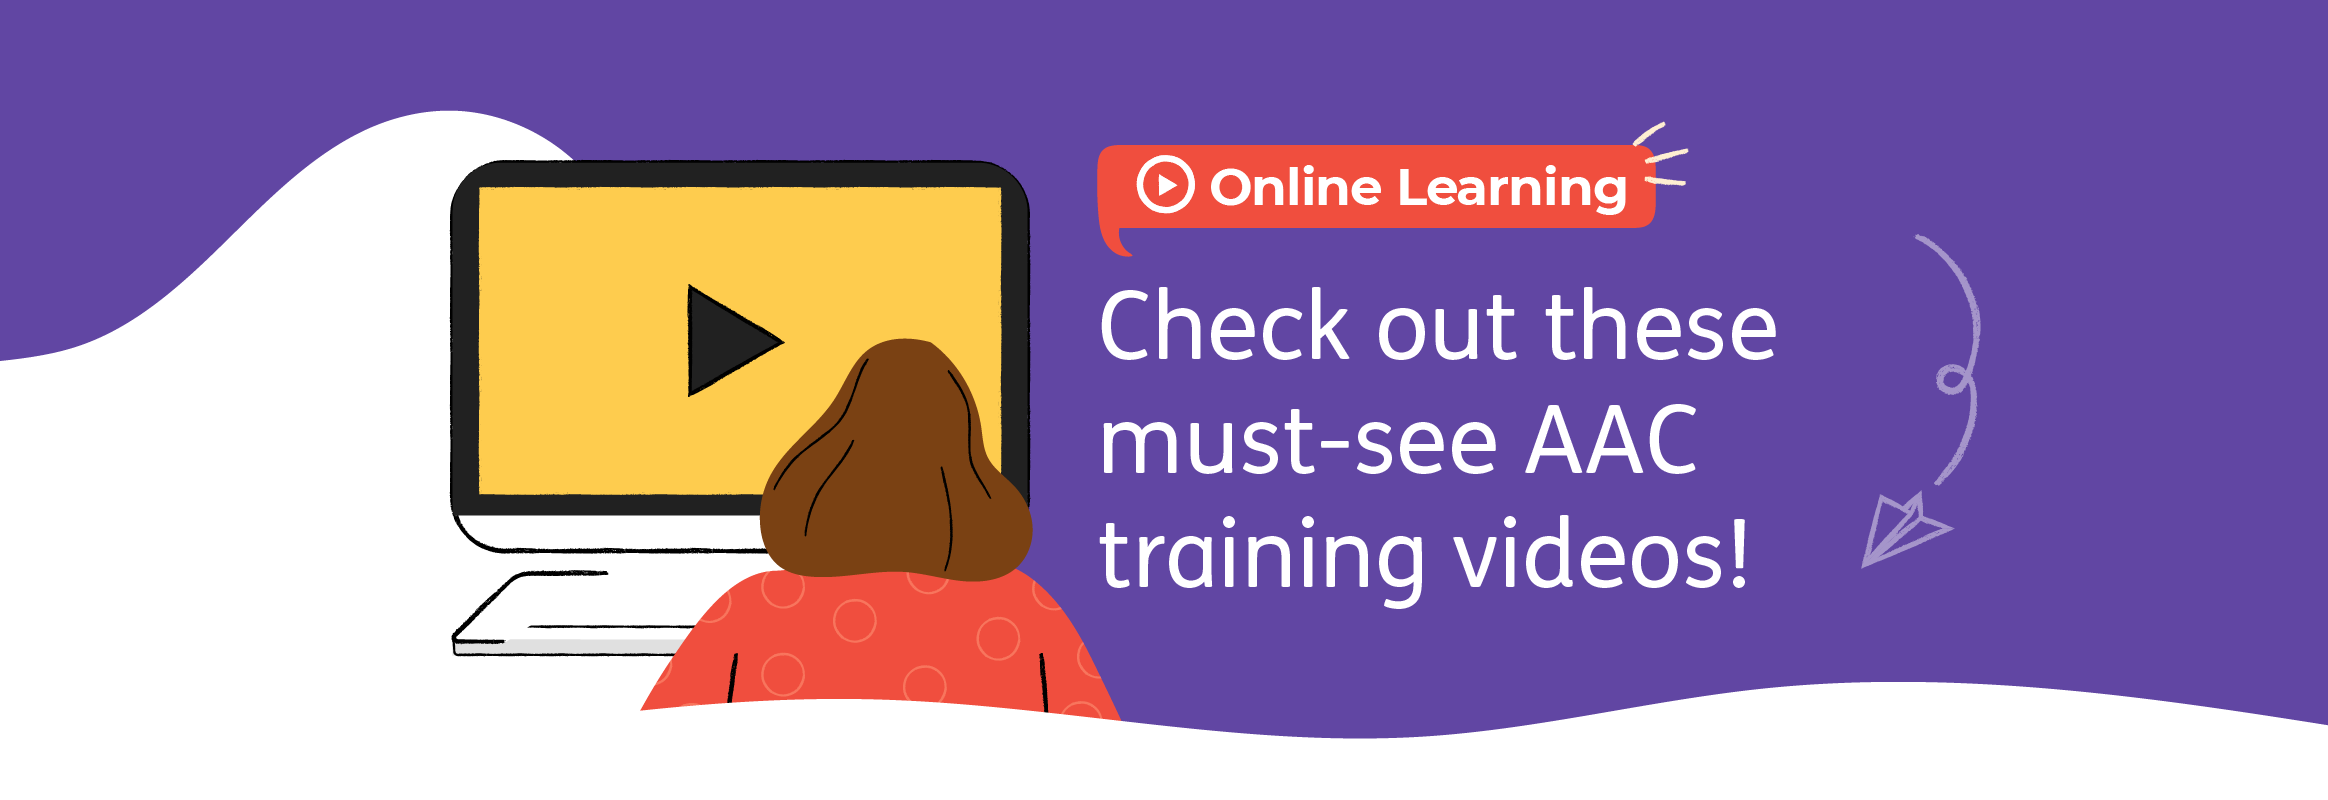 Check out these must-see AAC training videos